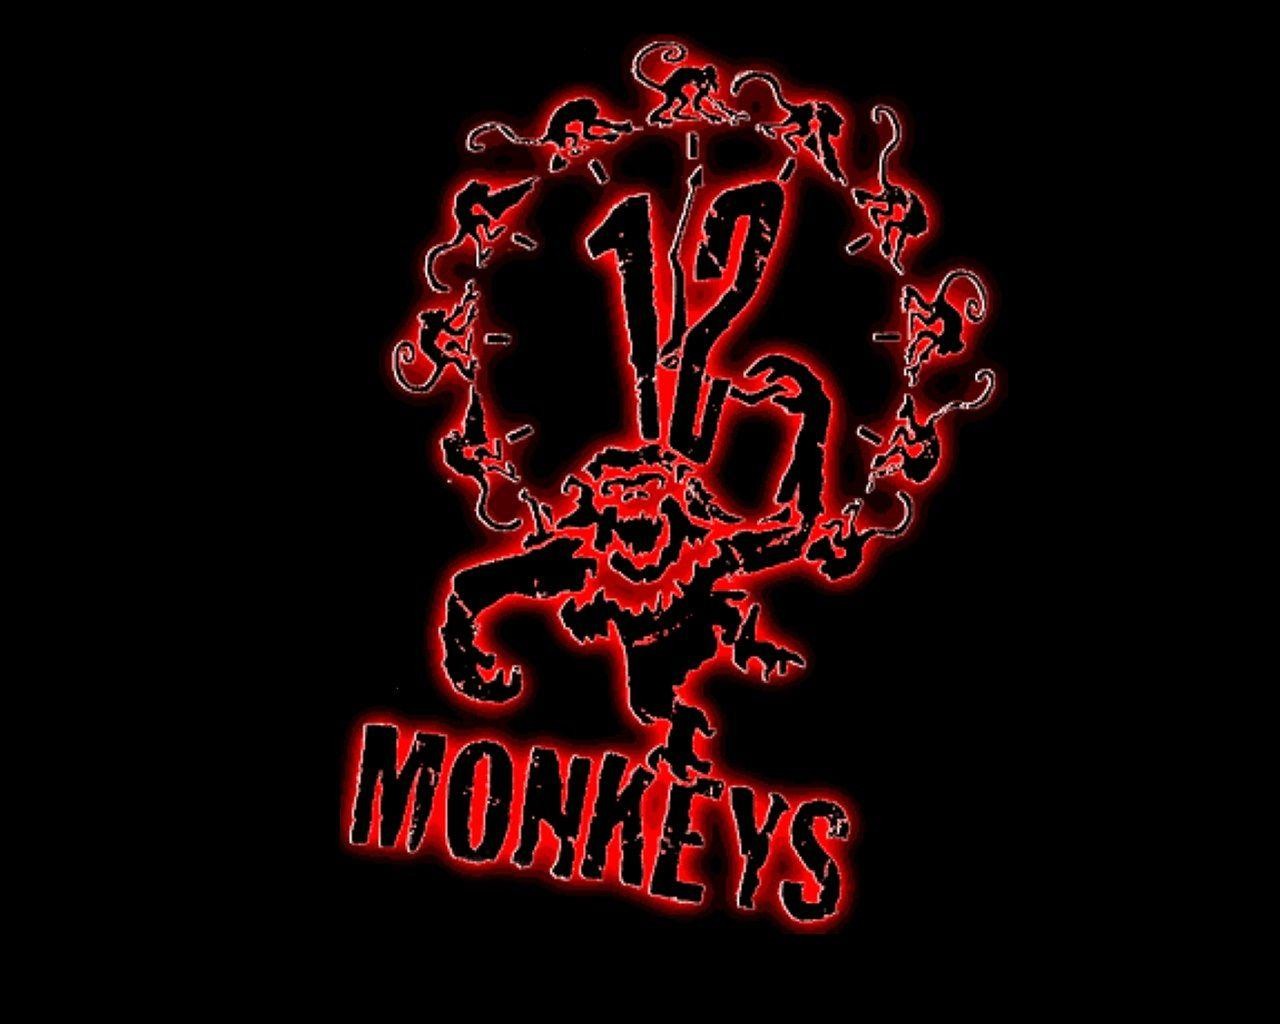 12 Monkeys Wallpaper and Background | 1280x1024 | ID:2858